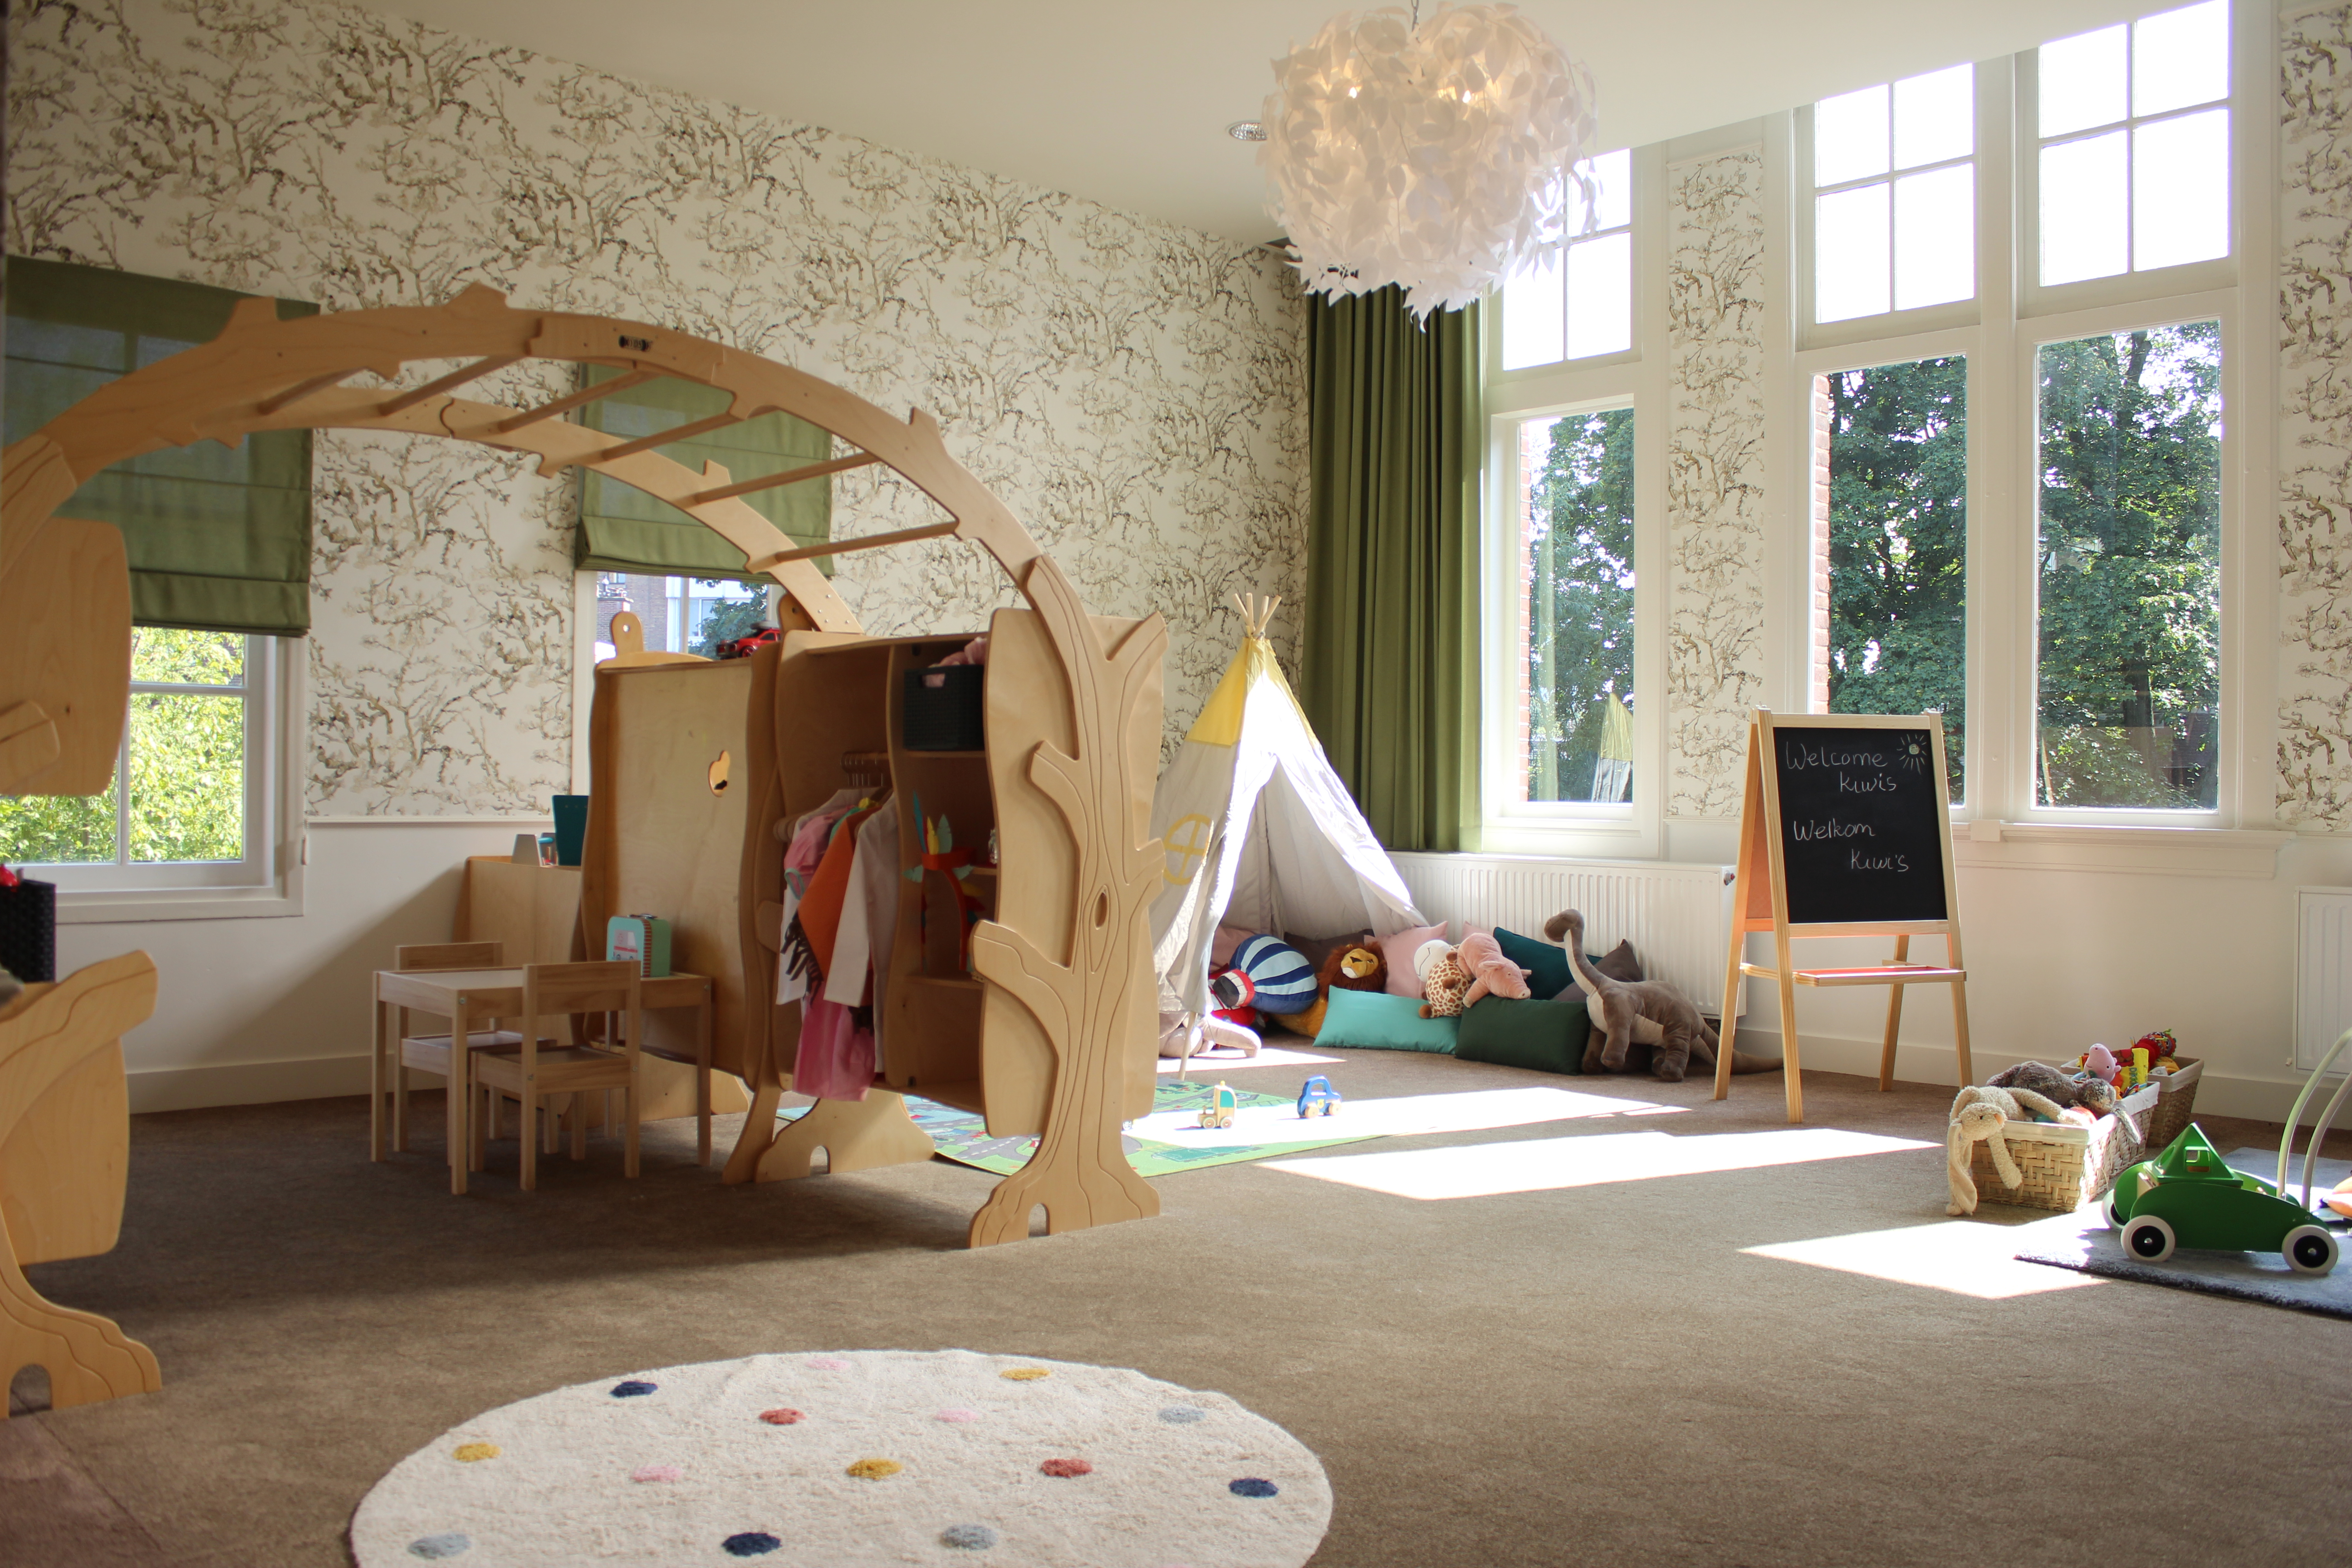 Beautiful day care room at Zein International Childcare